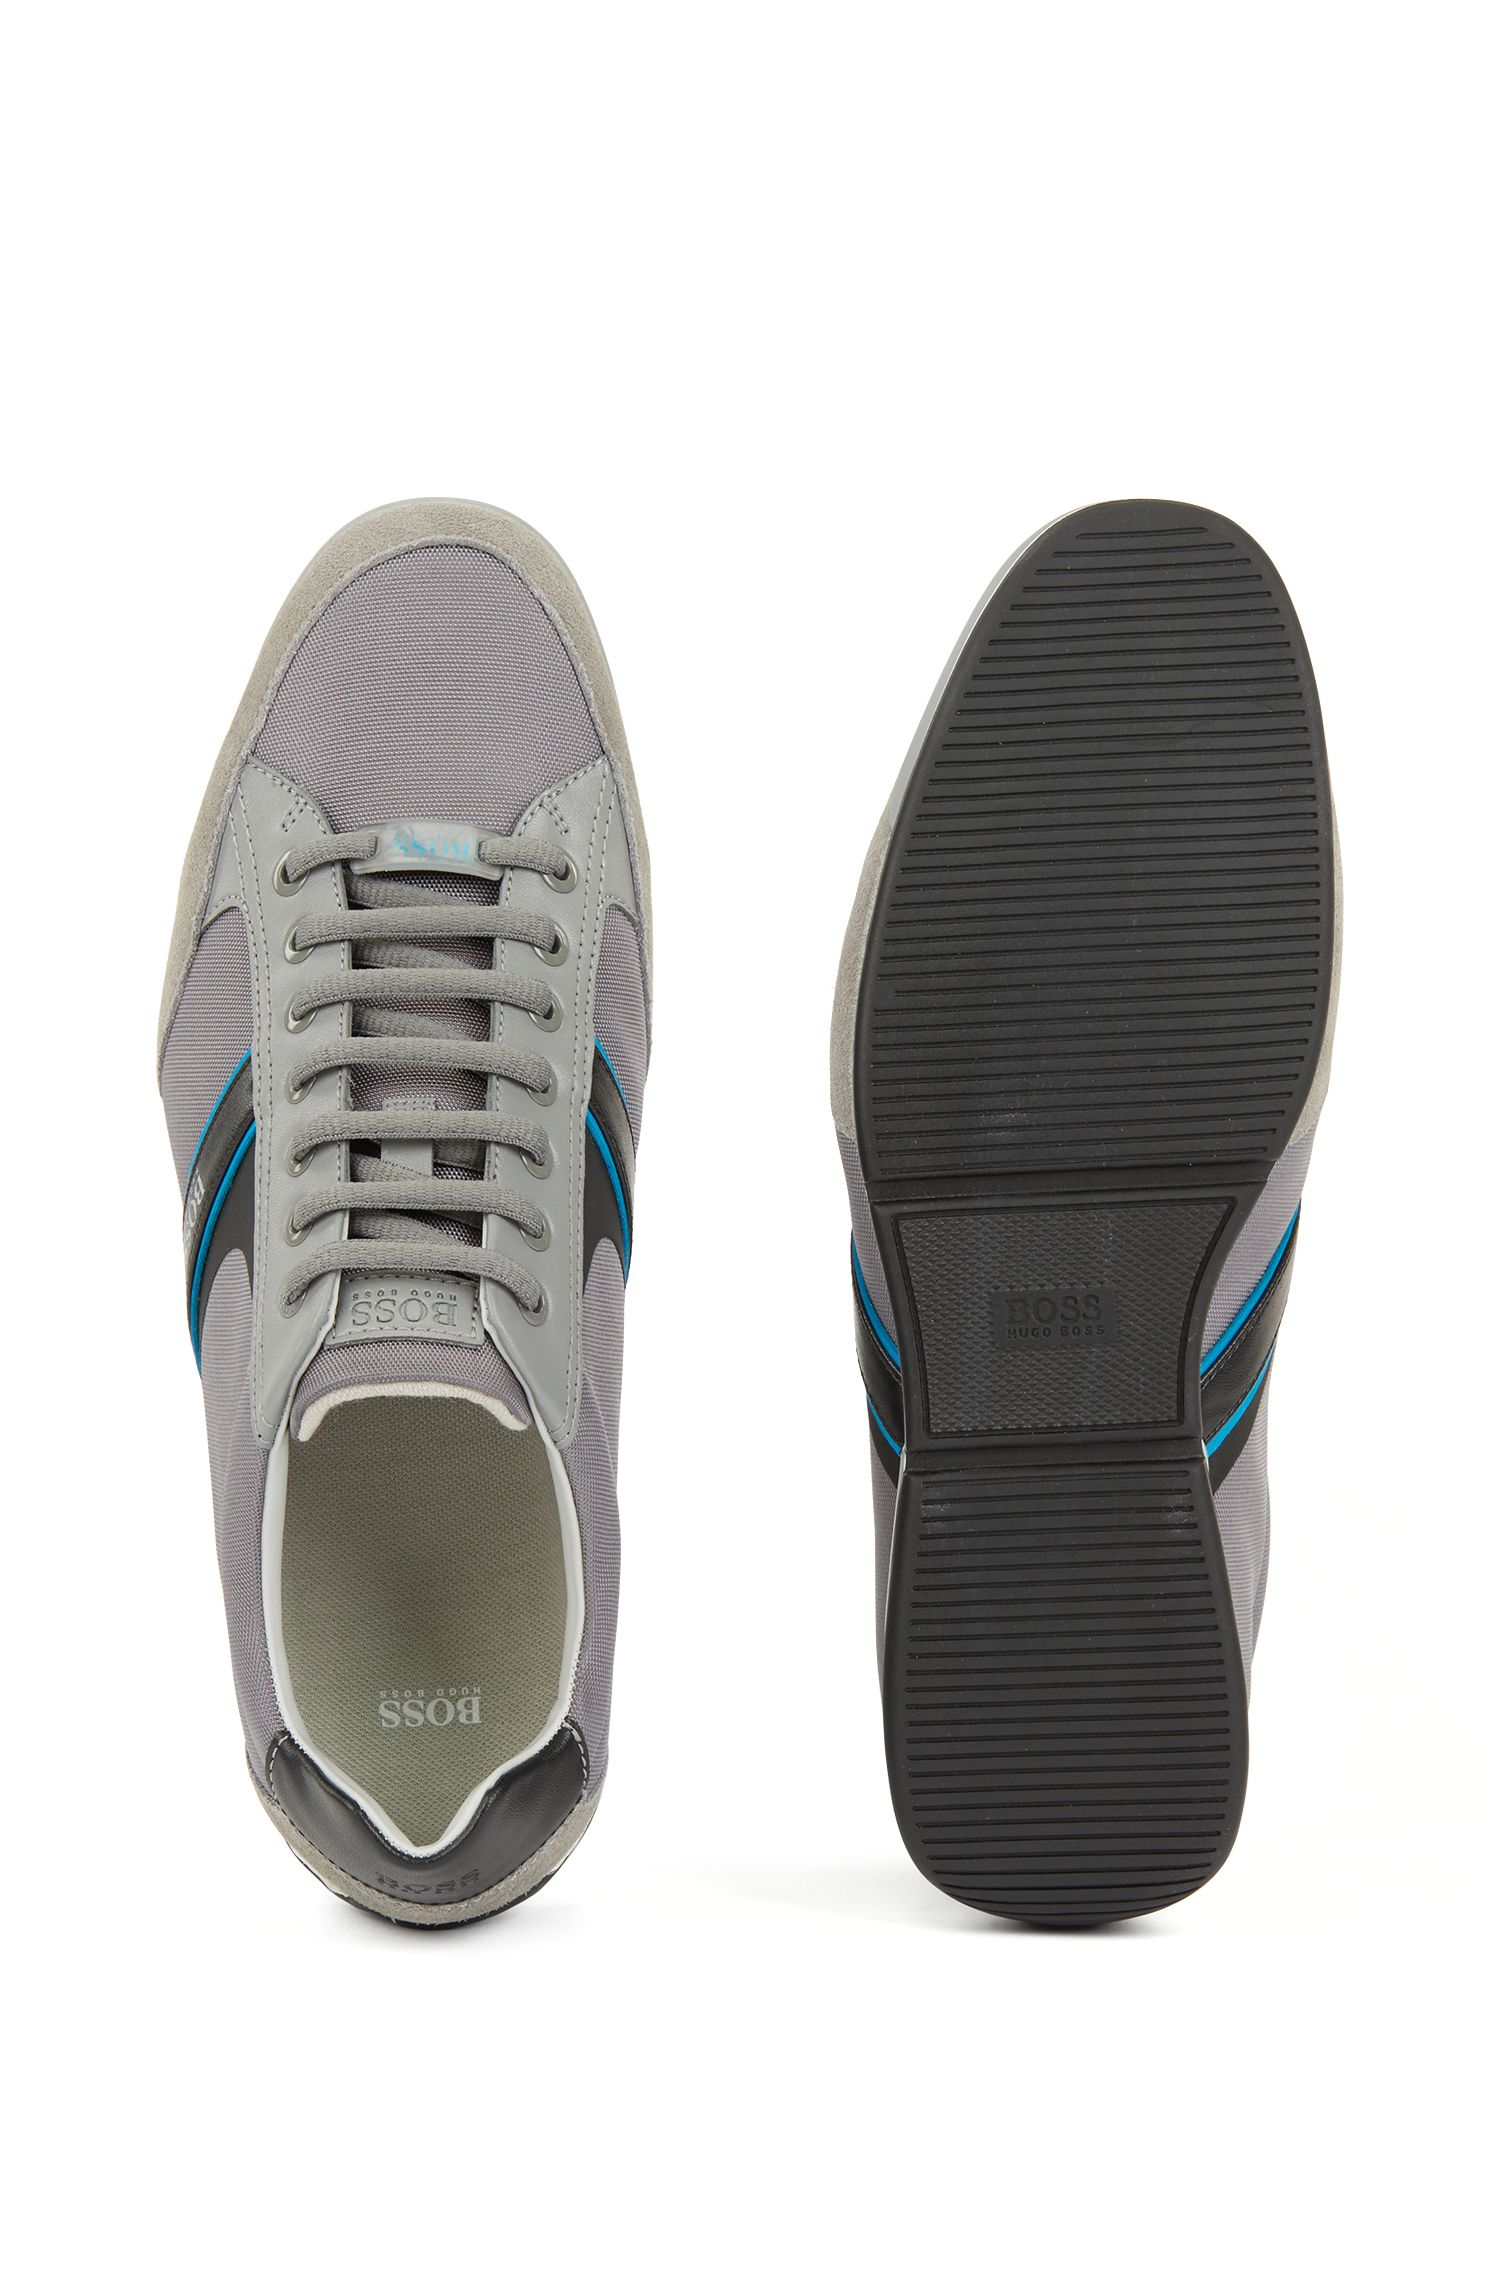 Hugo Boss - Lace-up hybrid trainers with moisture-wicking lining - 4